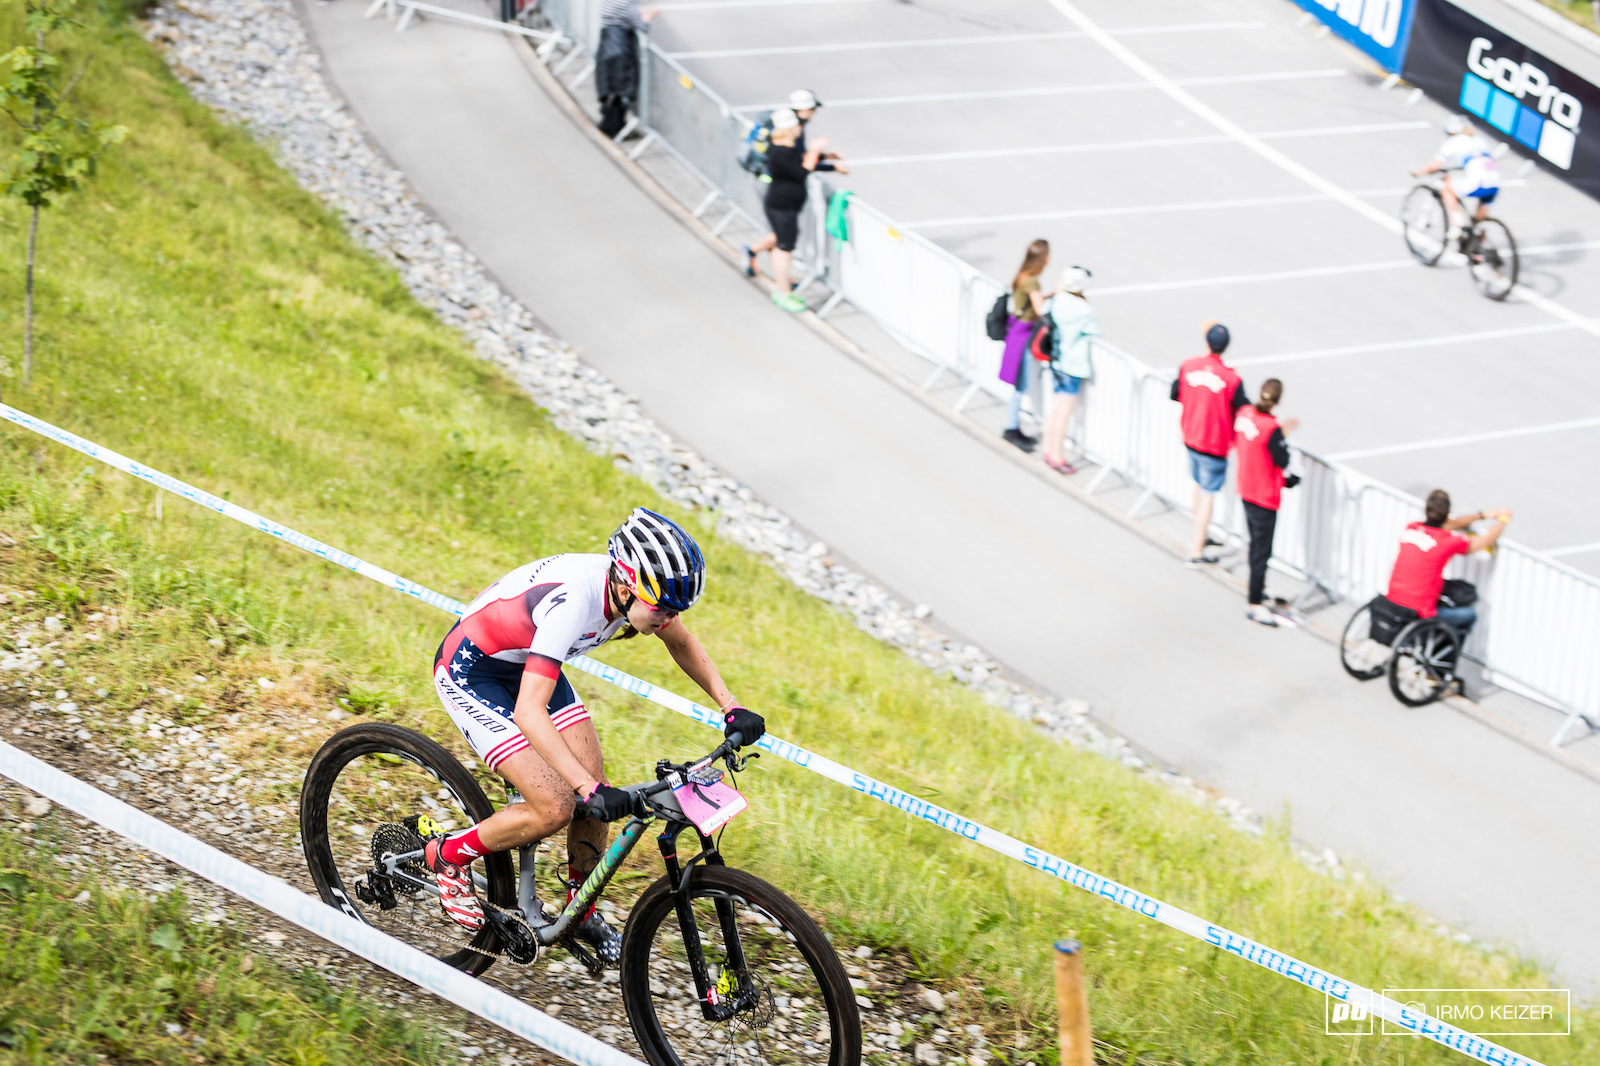 Kate Courtney had a comfortable lead coming into her last lap. Sina Frei in second.